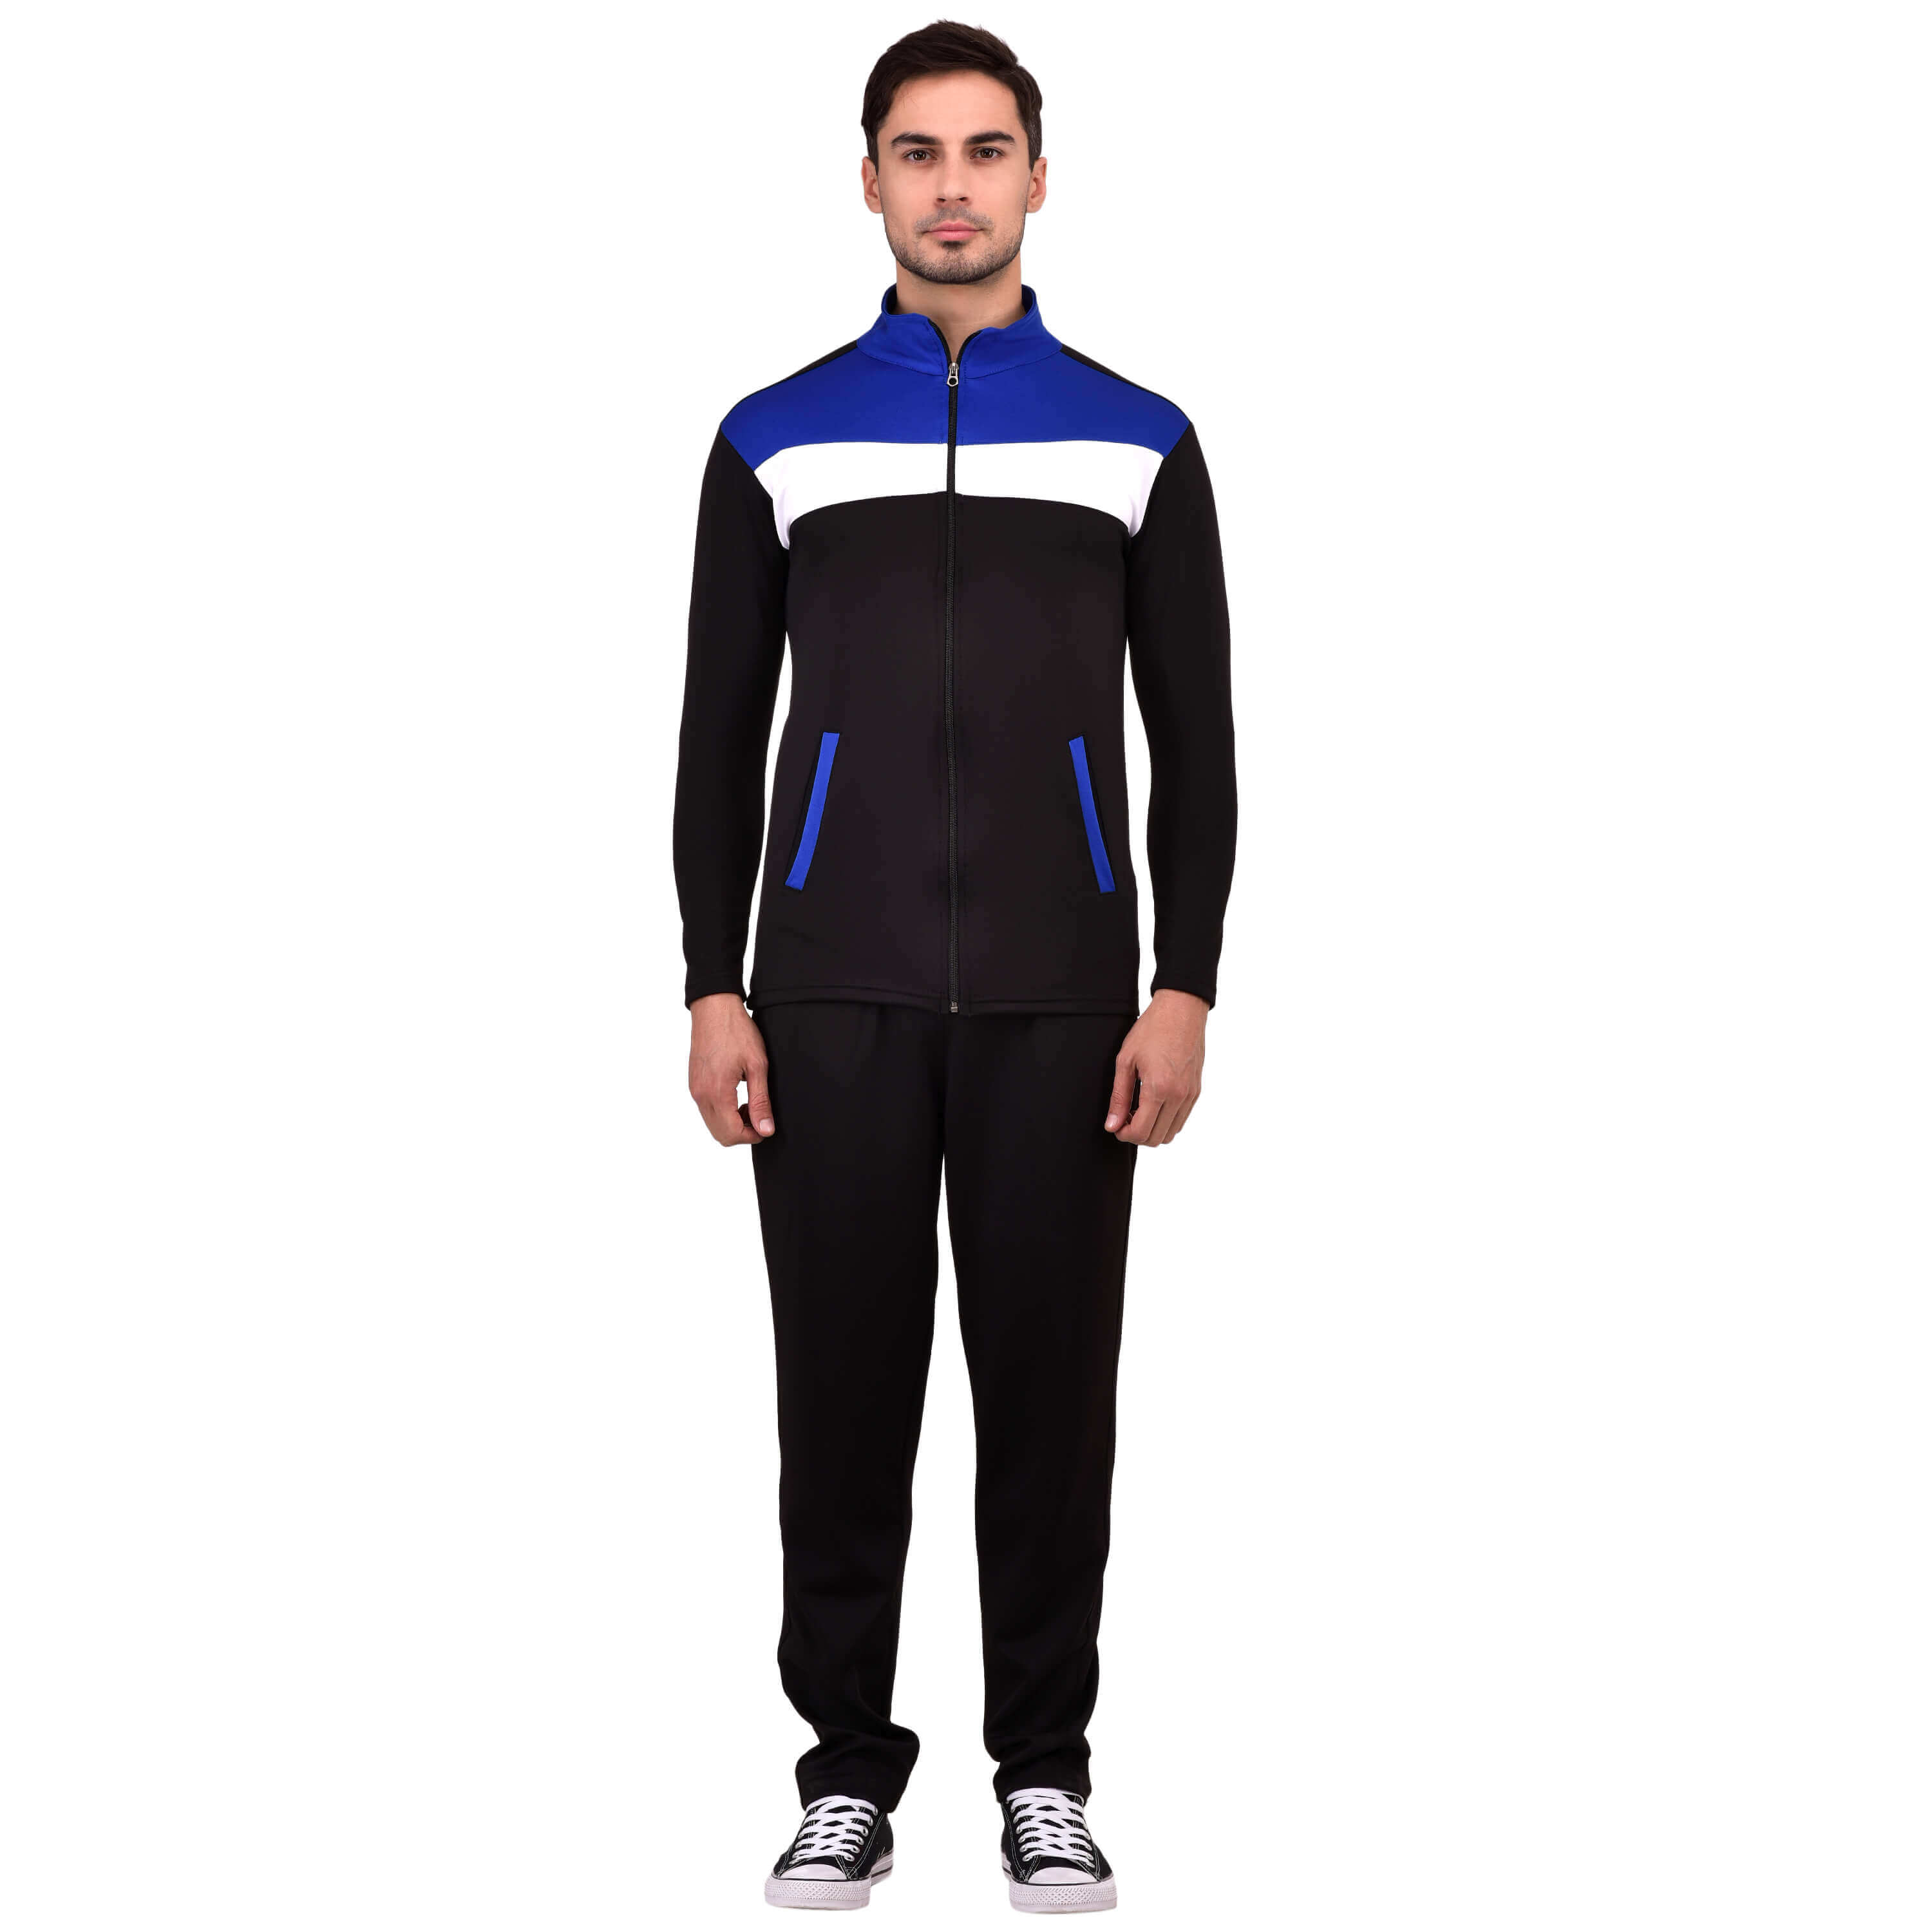 Black Tracksuit Manufacturers in Nanded